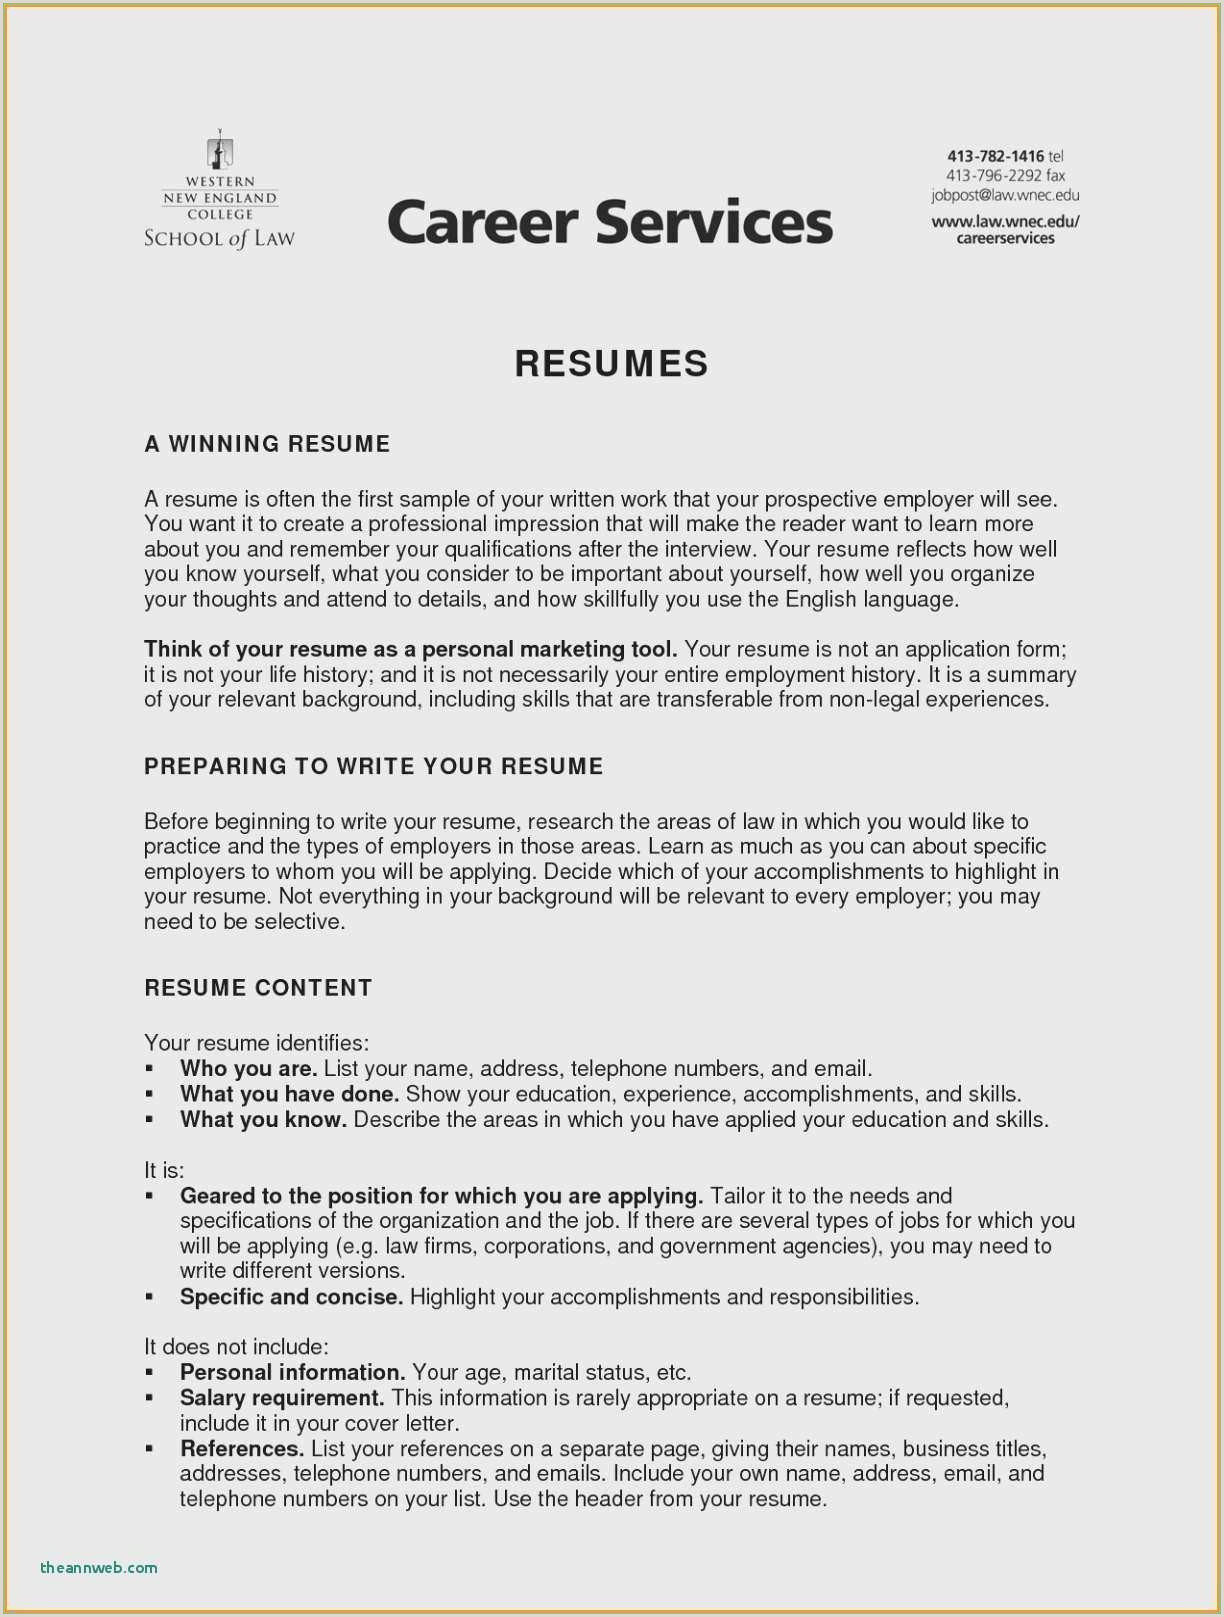 Resume format for One Job Hairstyles Professional Resume Examples Stunning Resume